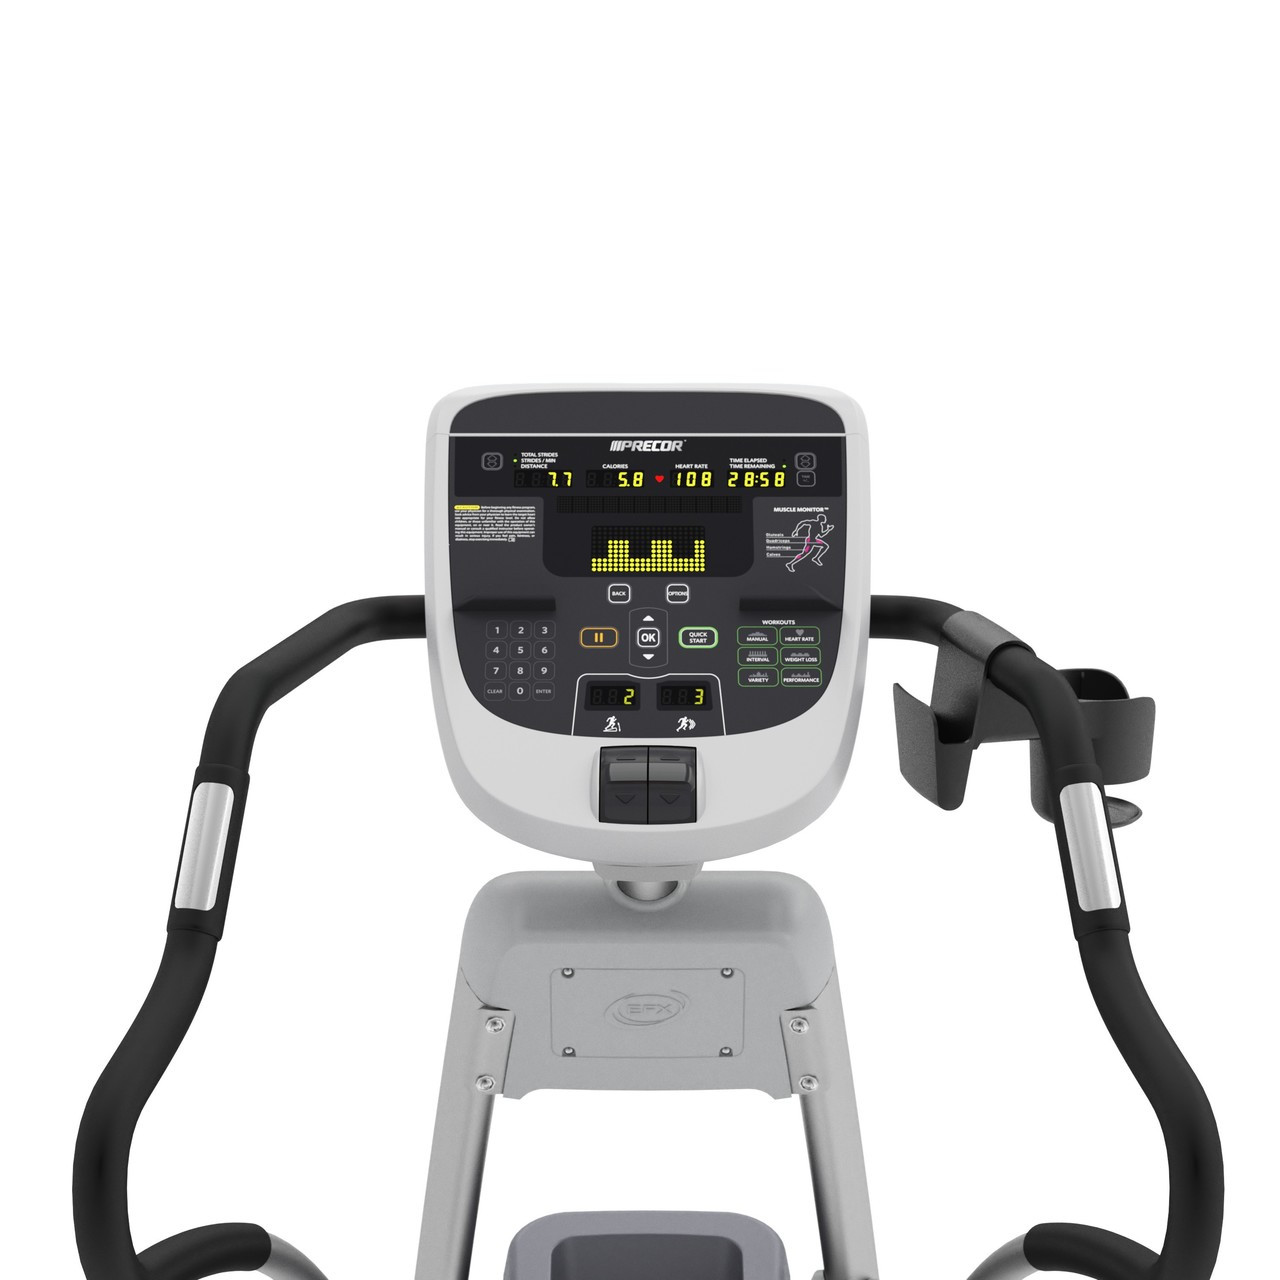 Precor 833 EFX elliptical